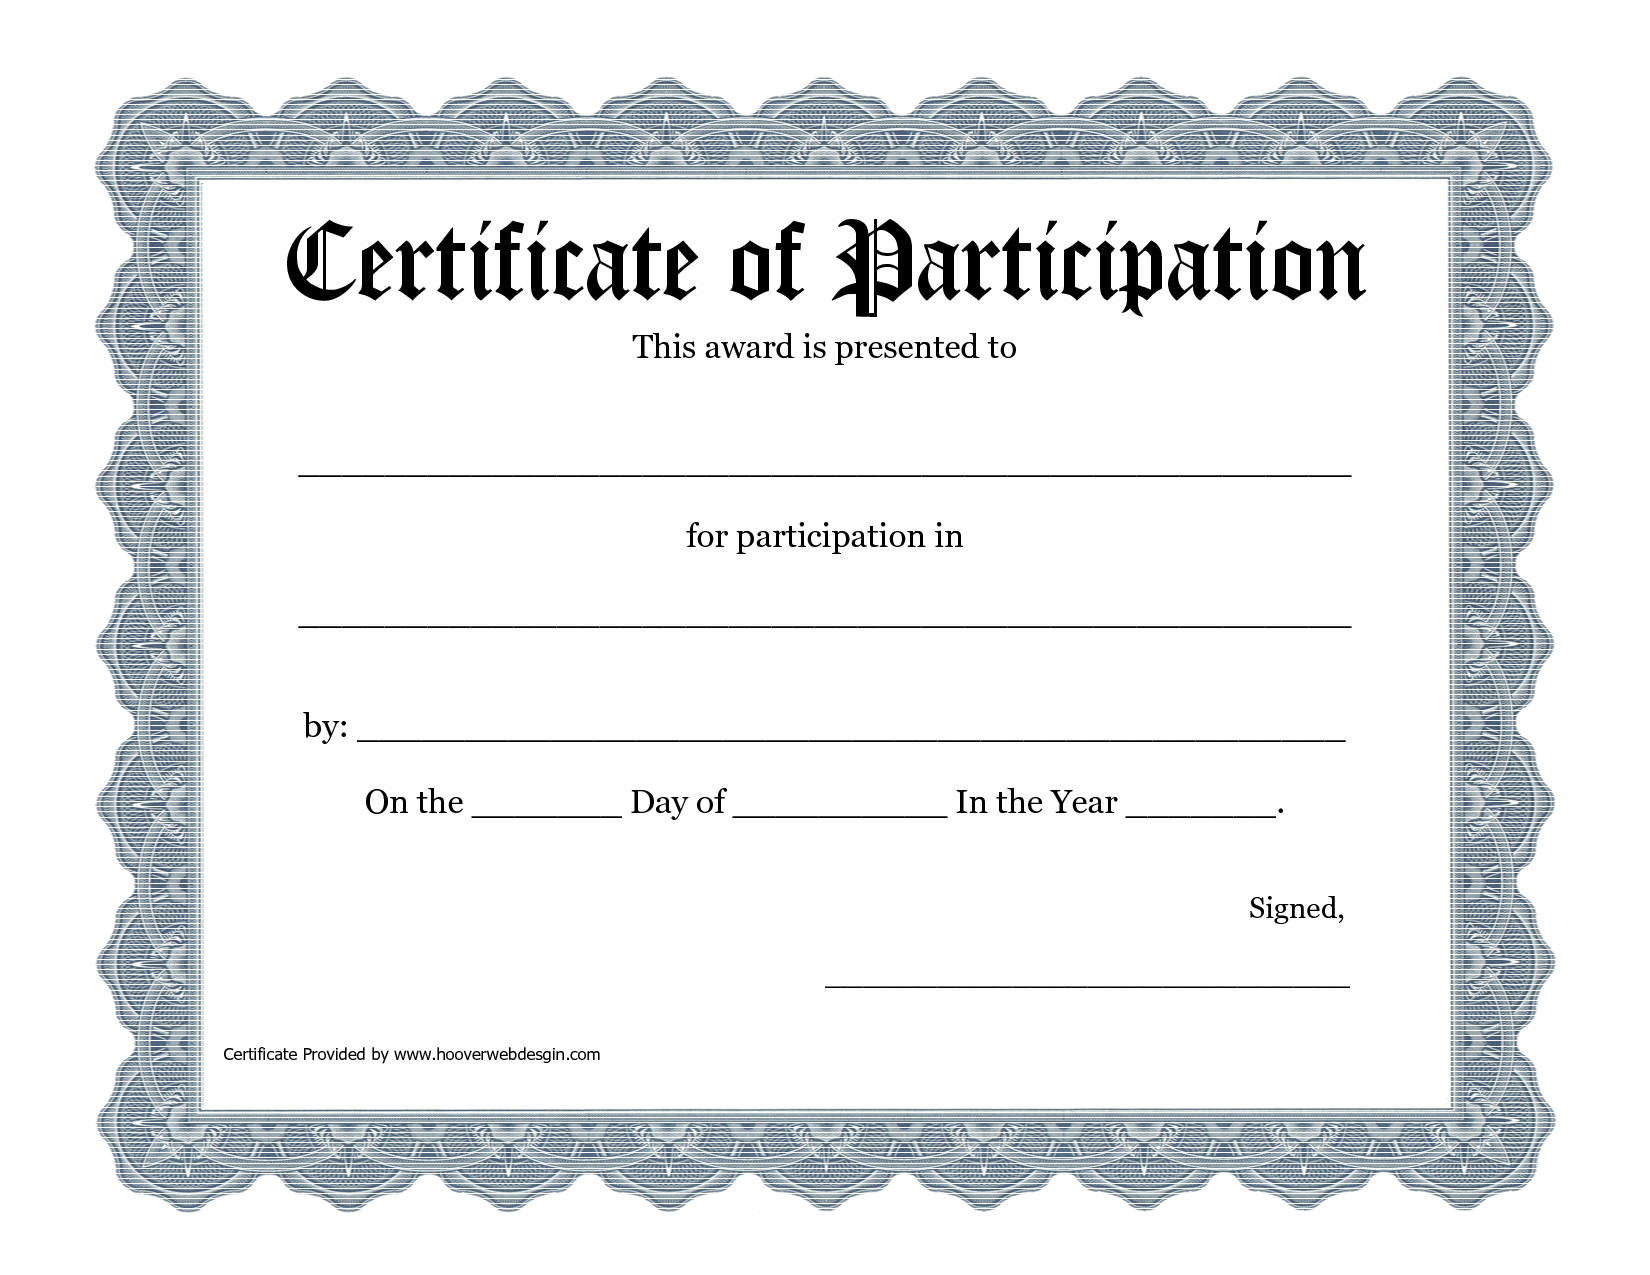 Certificate Of Participation Template Pdf In Certificate Of Participation Template Pdf